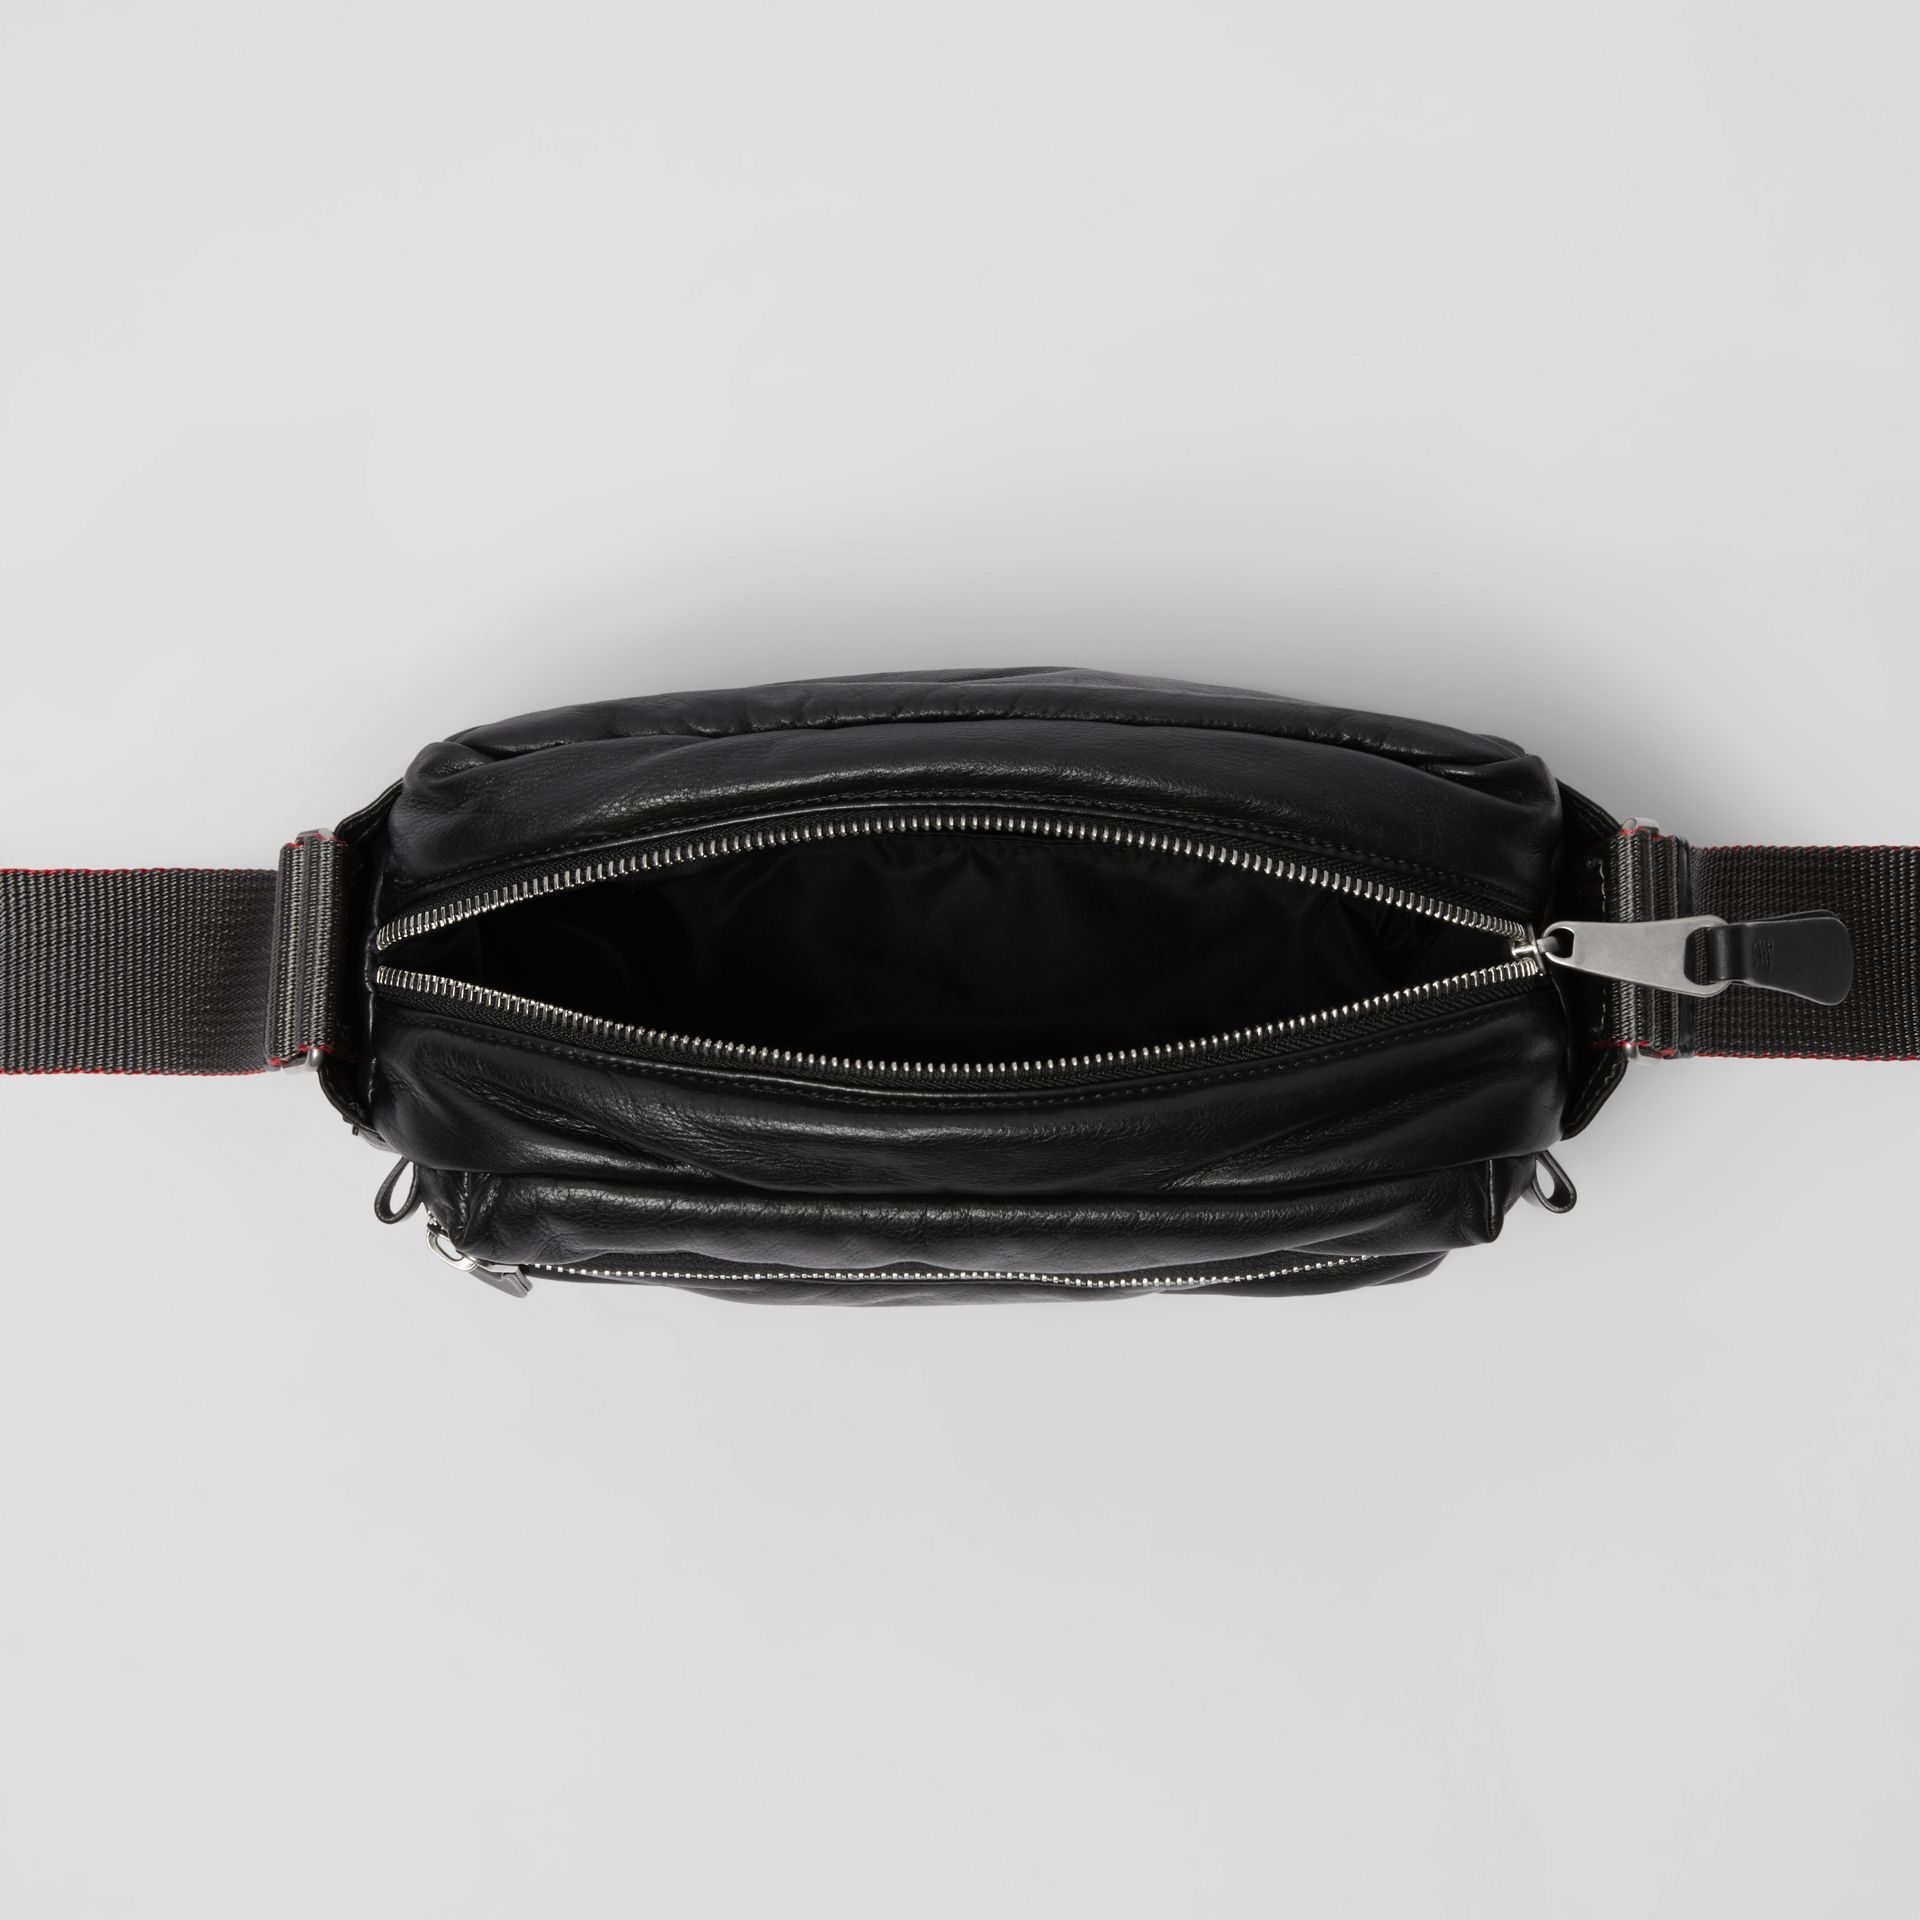 EKD Nappa Leather Crossbody Bag in Black - Men | Burberry United States - gallery image 3